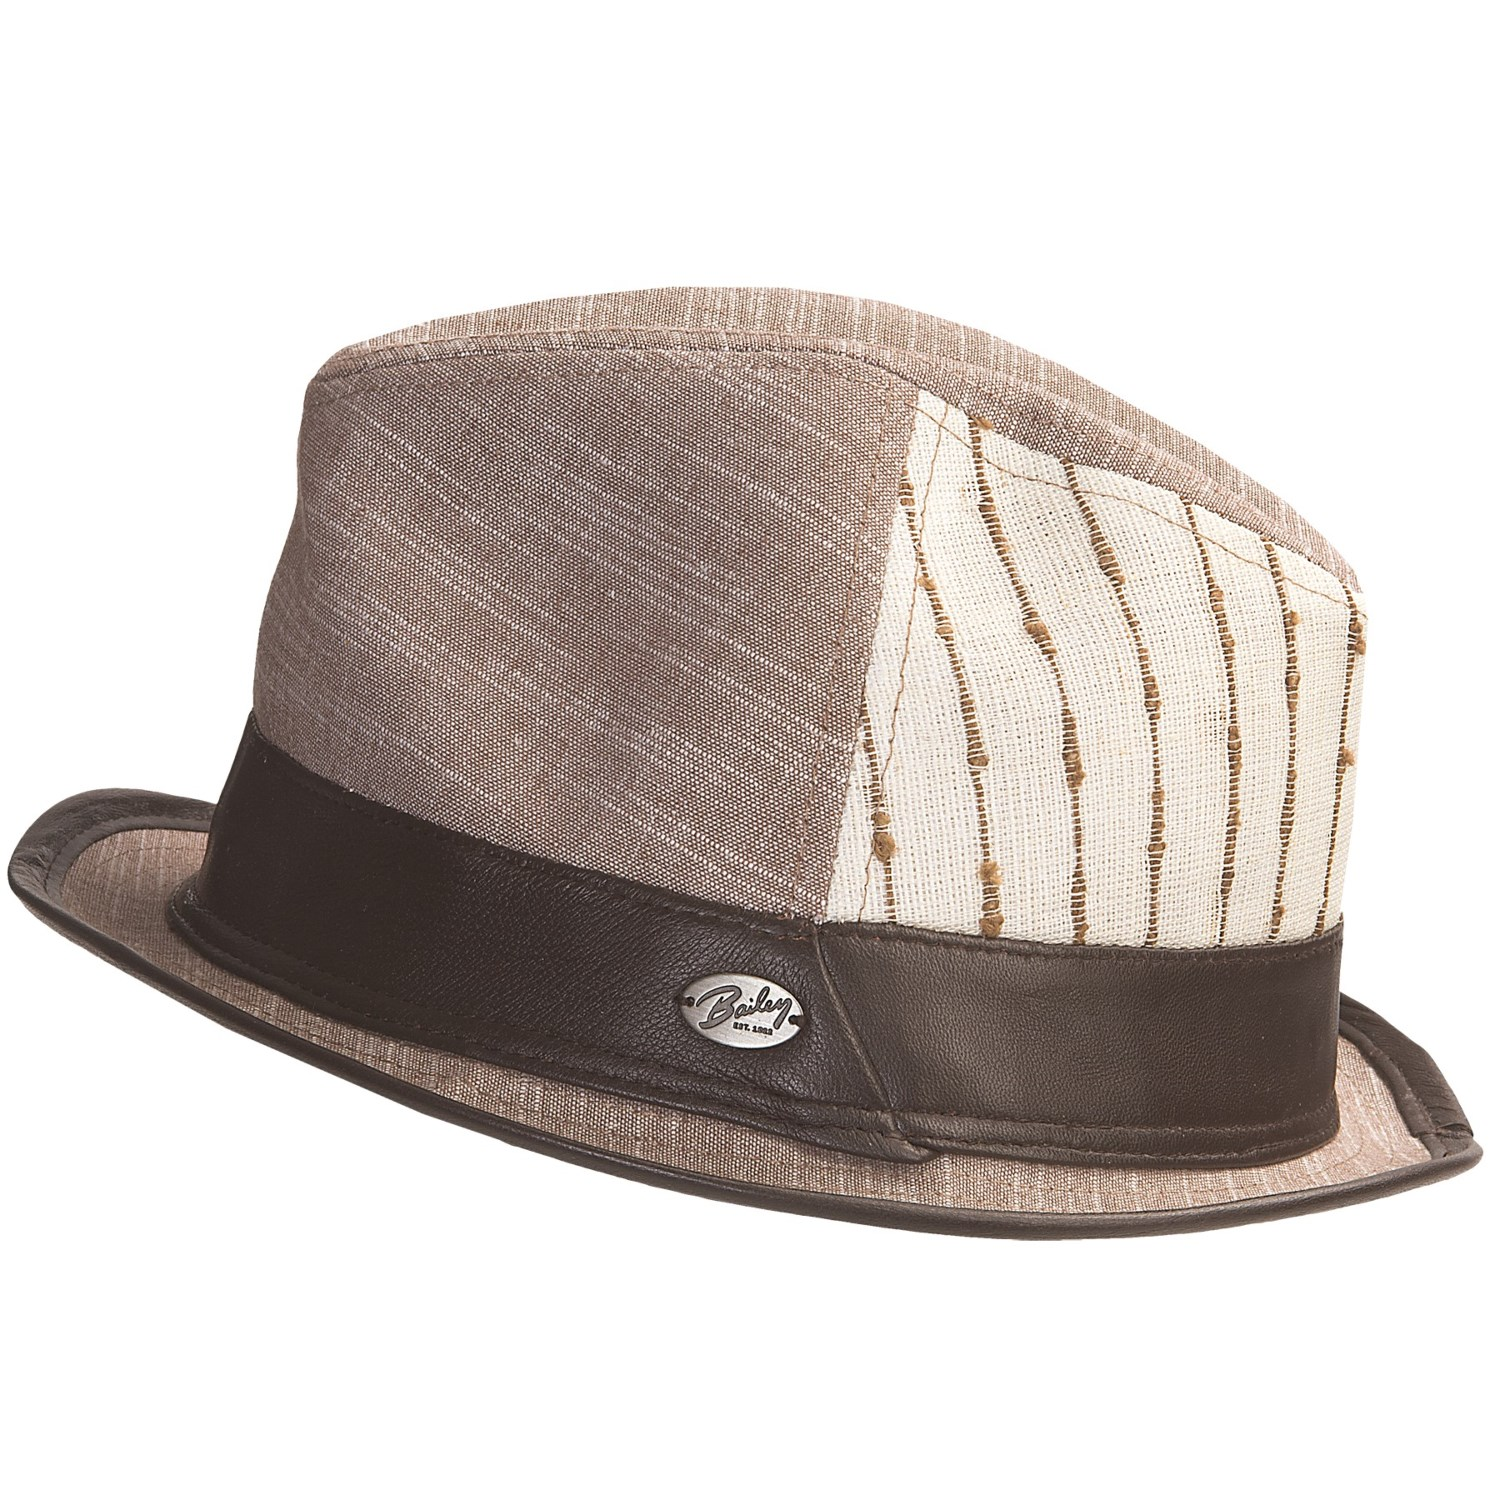 6d171c18ec8d8 Bailey Gangster Fedora Hat All Fedoras Bailey Fedora Hats For Men  Bailey  Of Hollywood Belvis Linen Fedora Hat (For Men